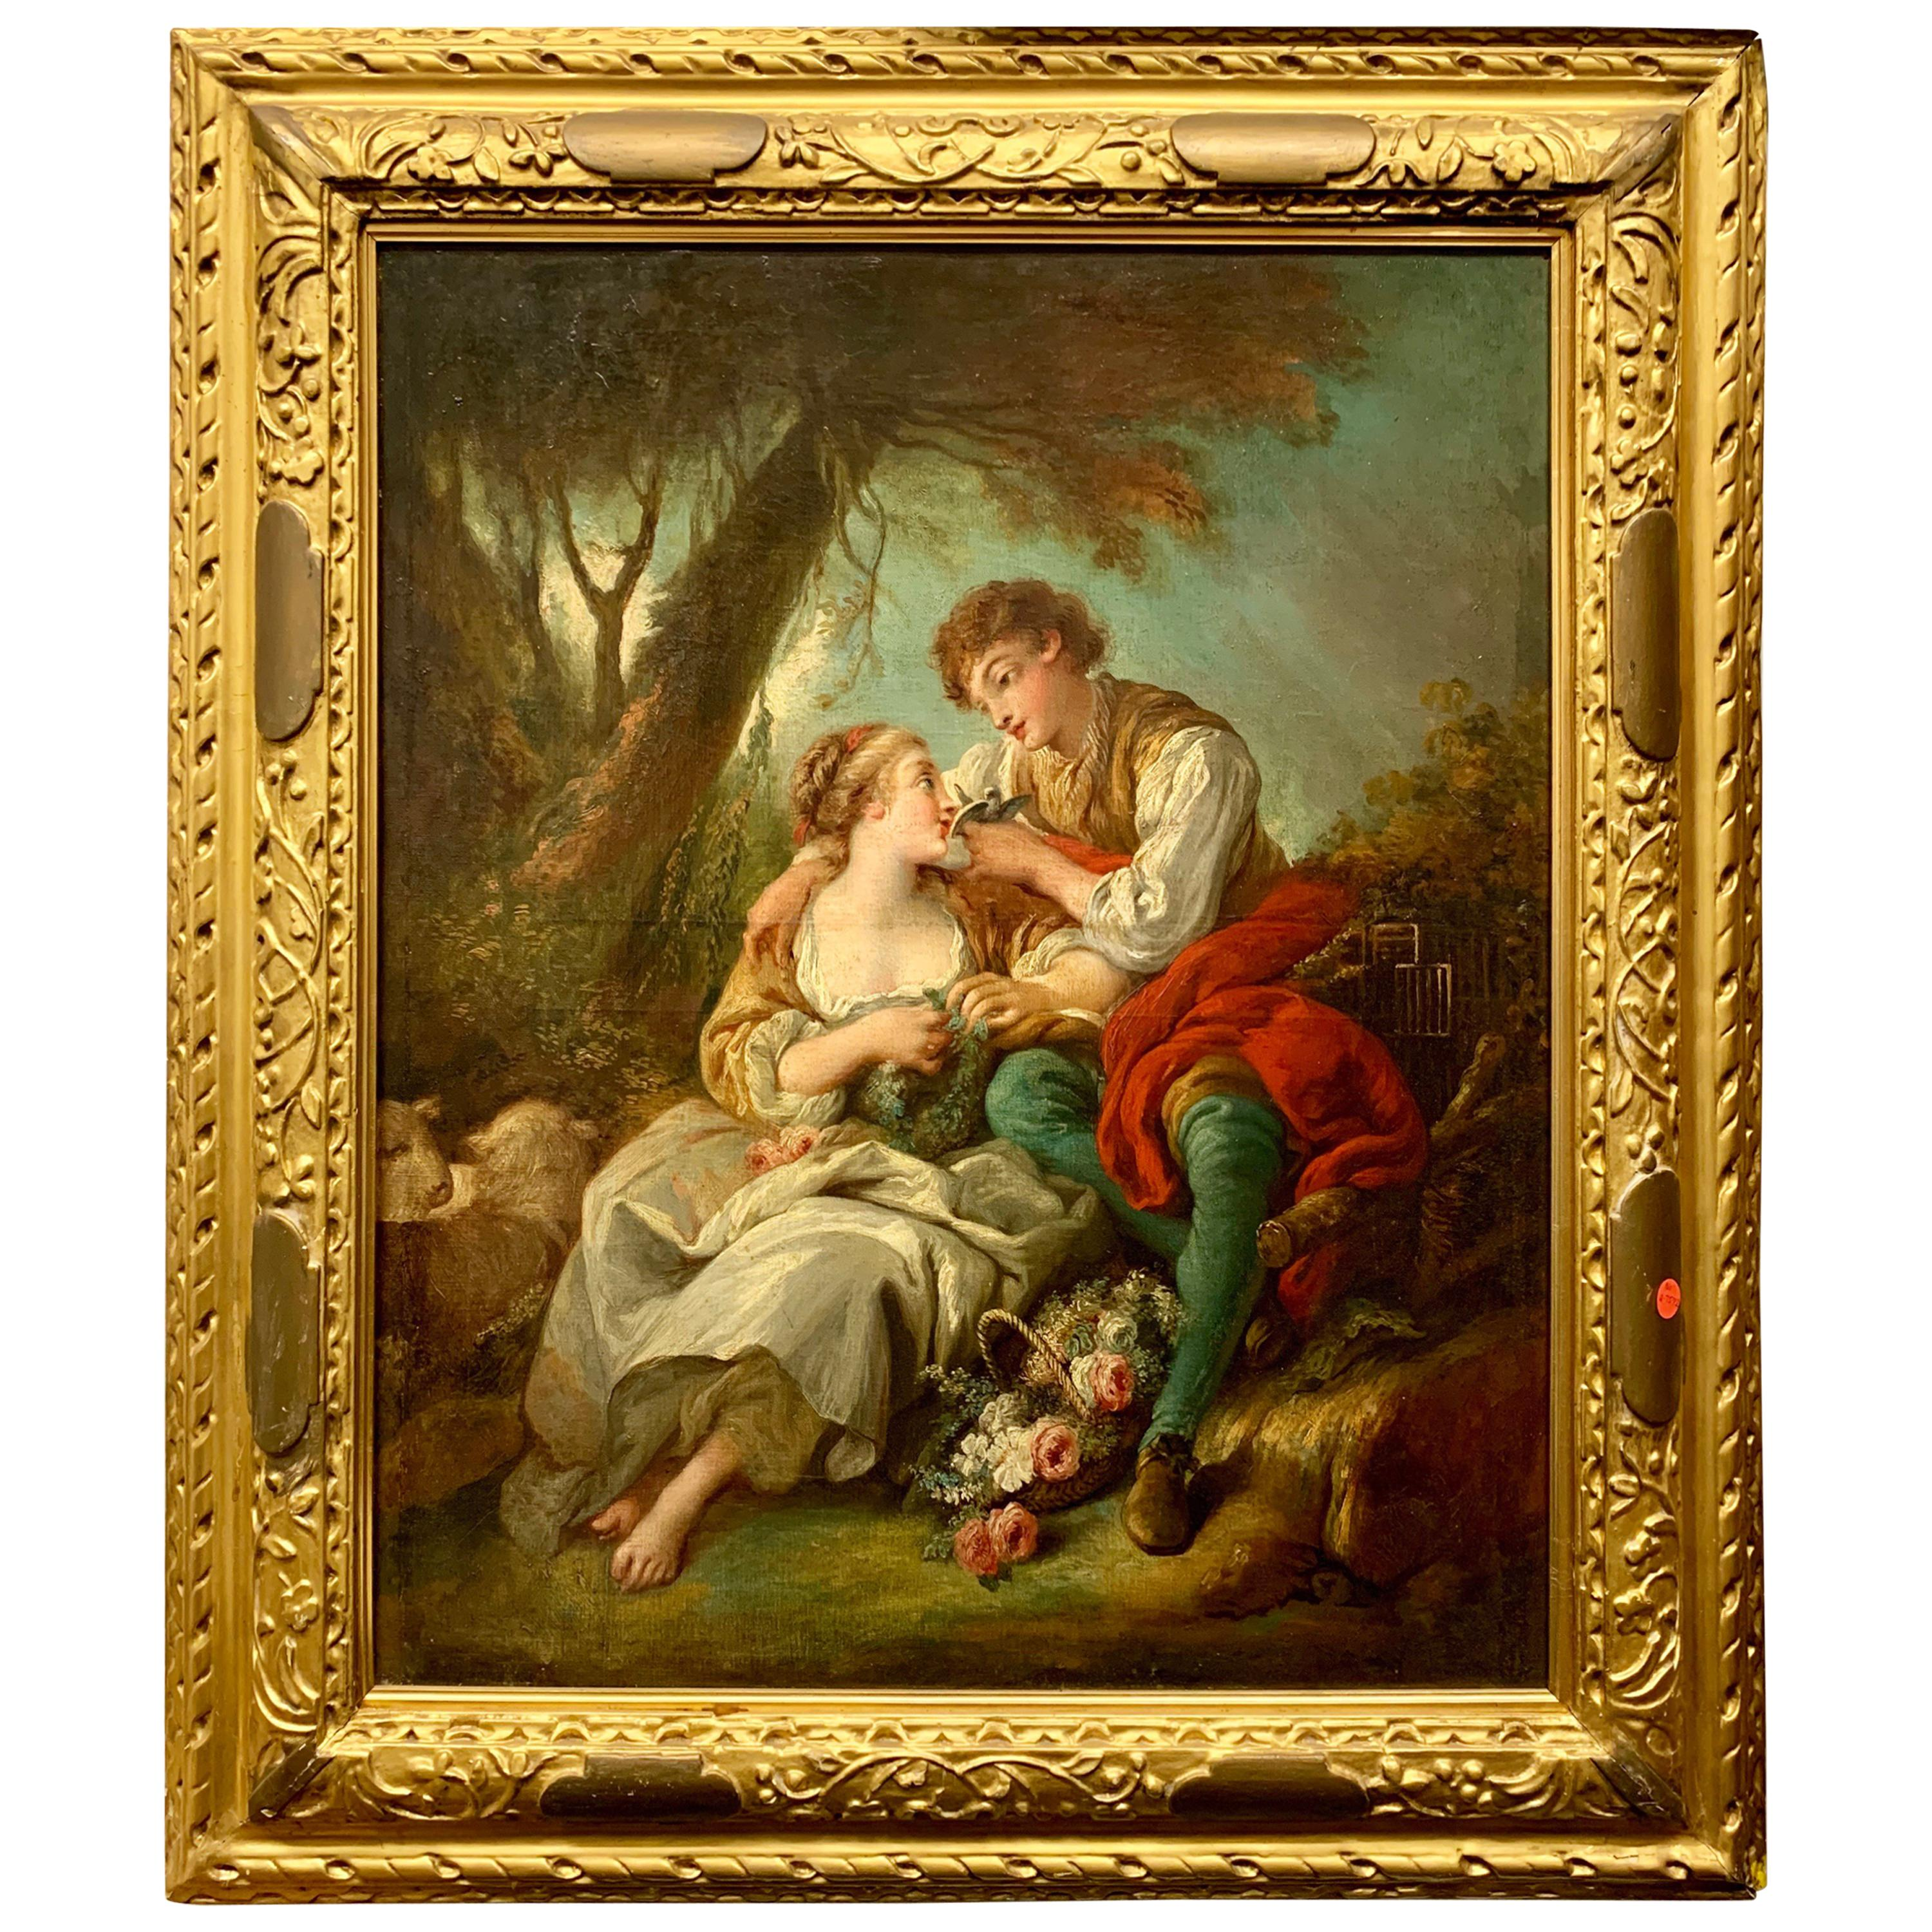 19th Century Oil Painting on Canvas after Francois Boucher